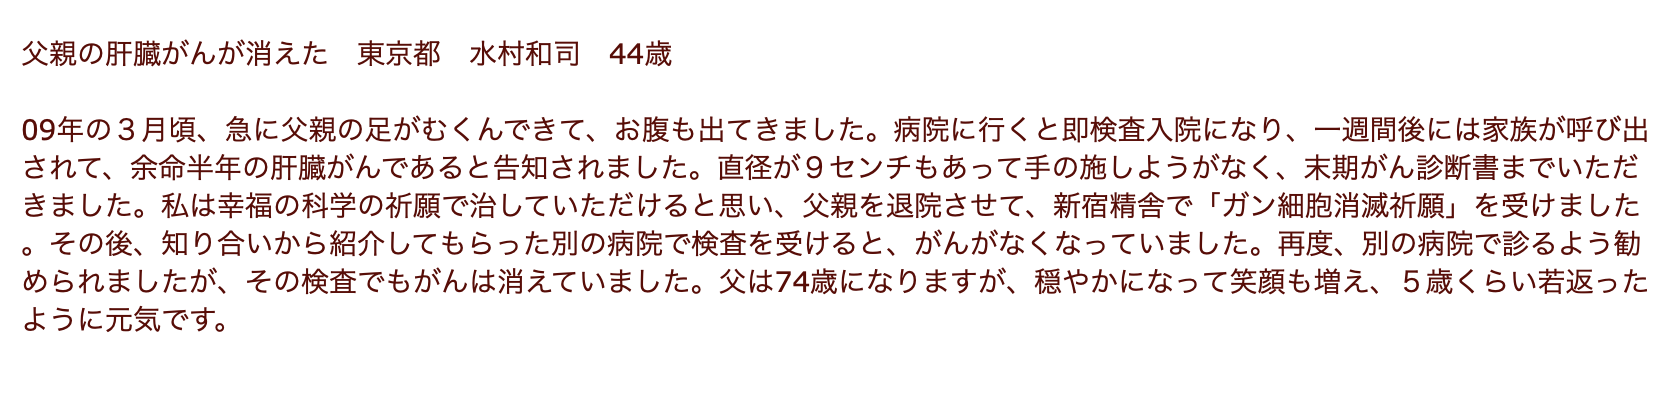 20190221100454a1b.png